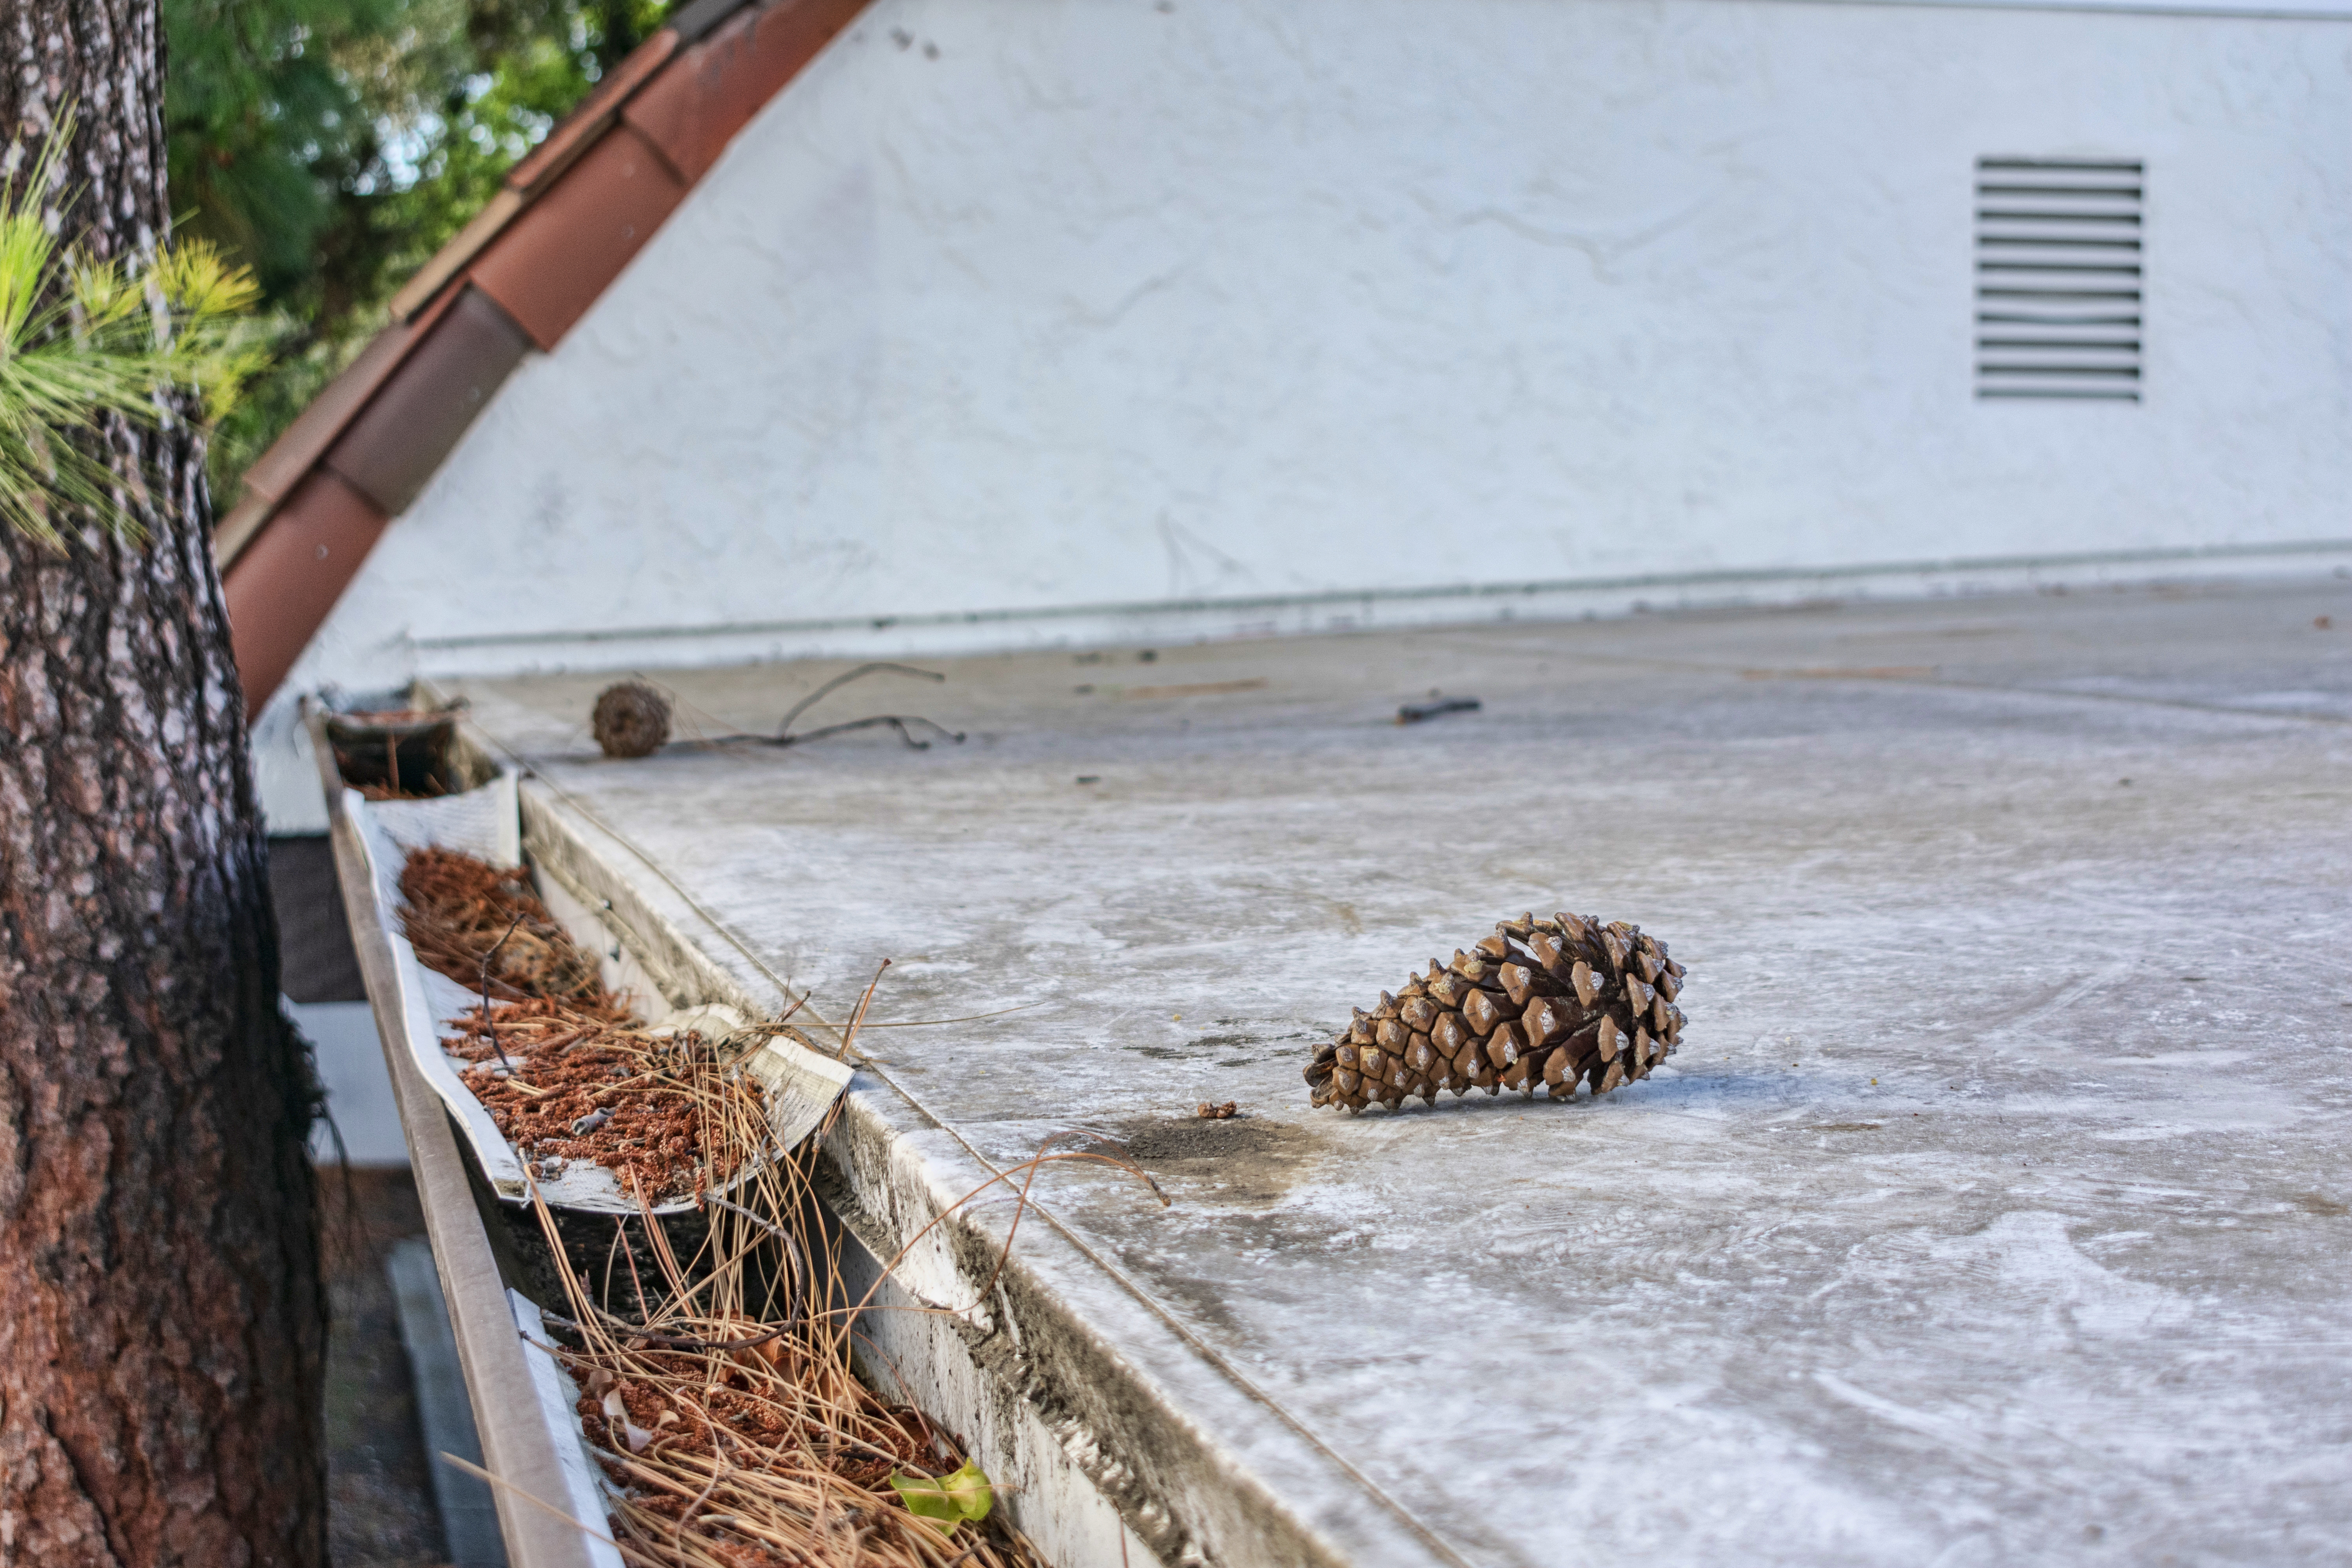 Roof Gutter Clogged With Leaves Pine Needles And Debris